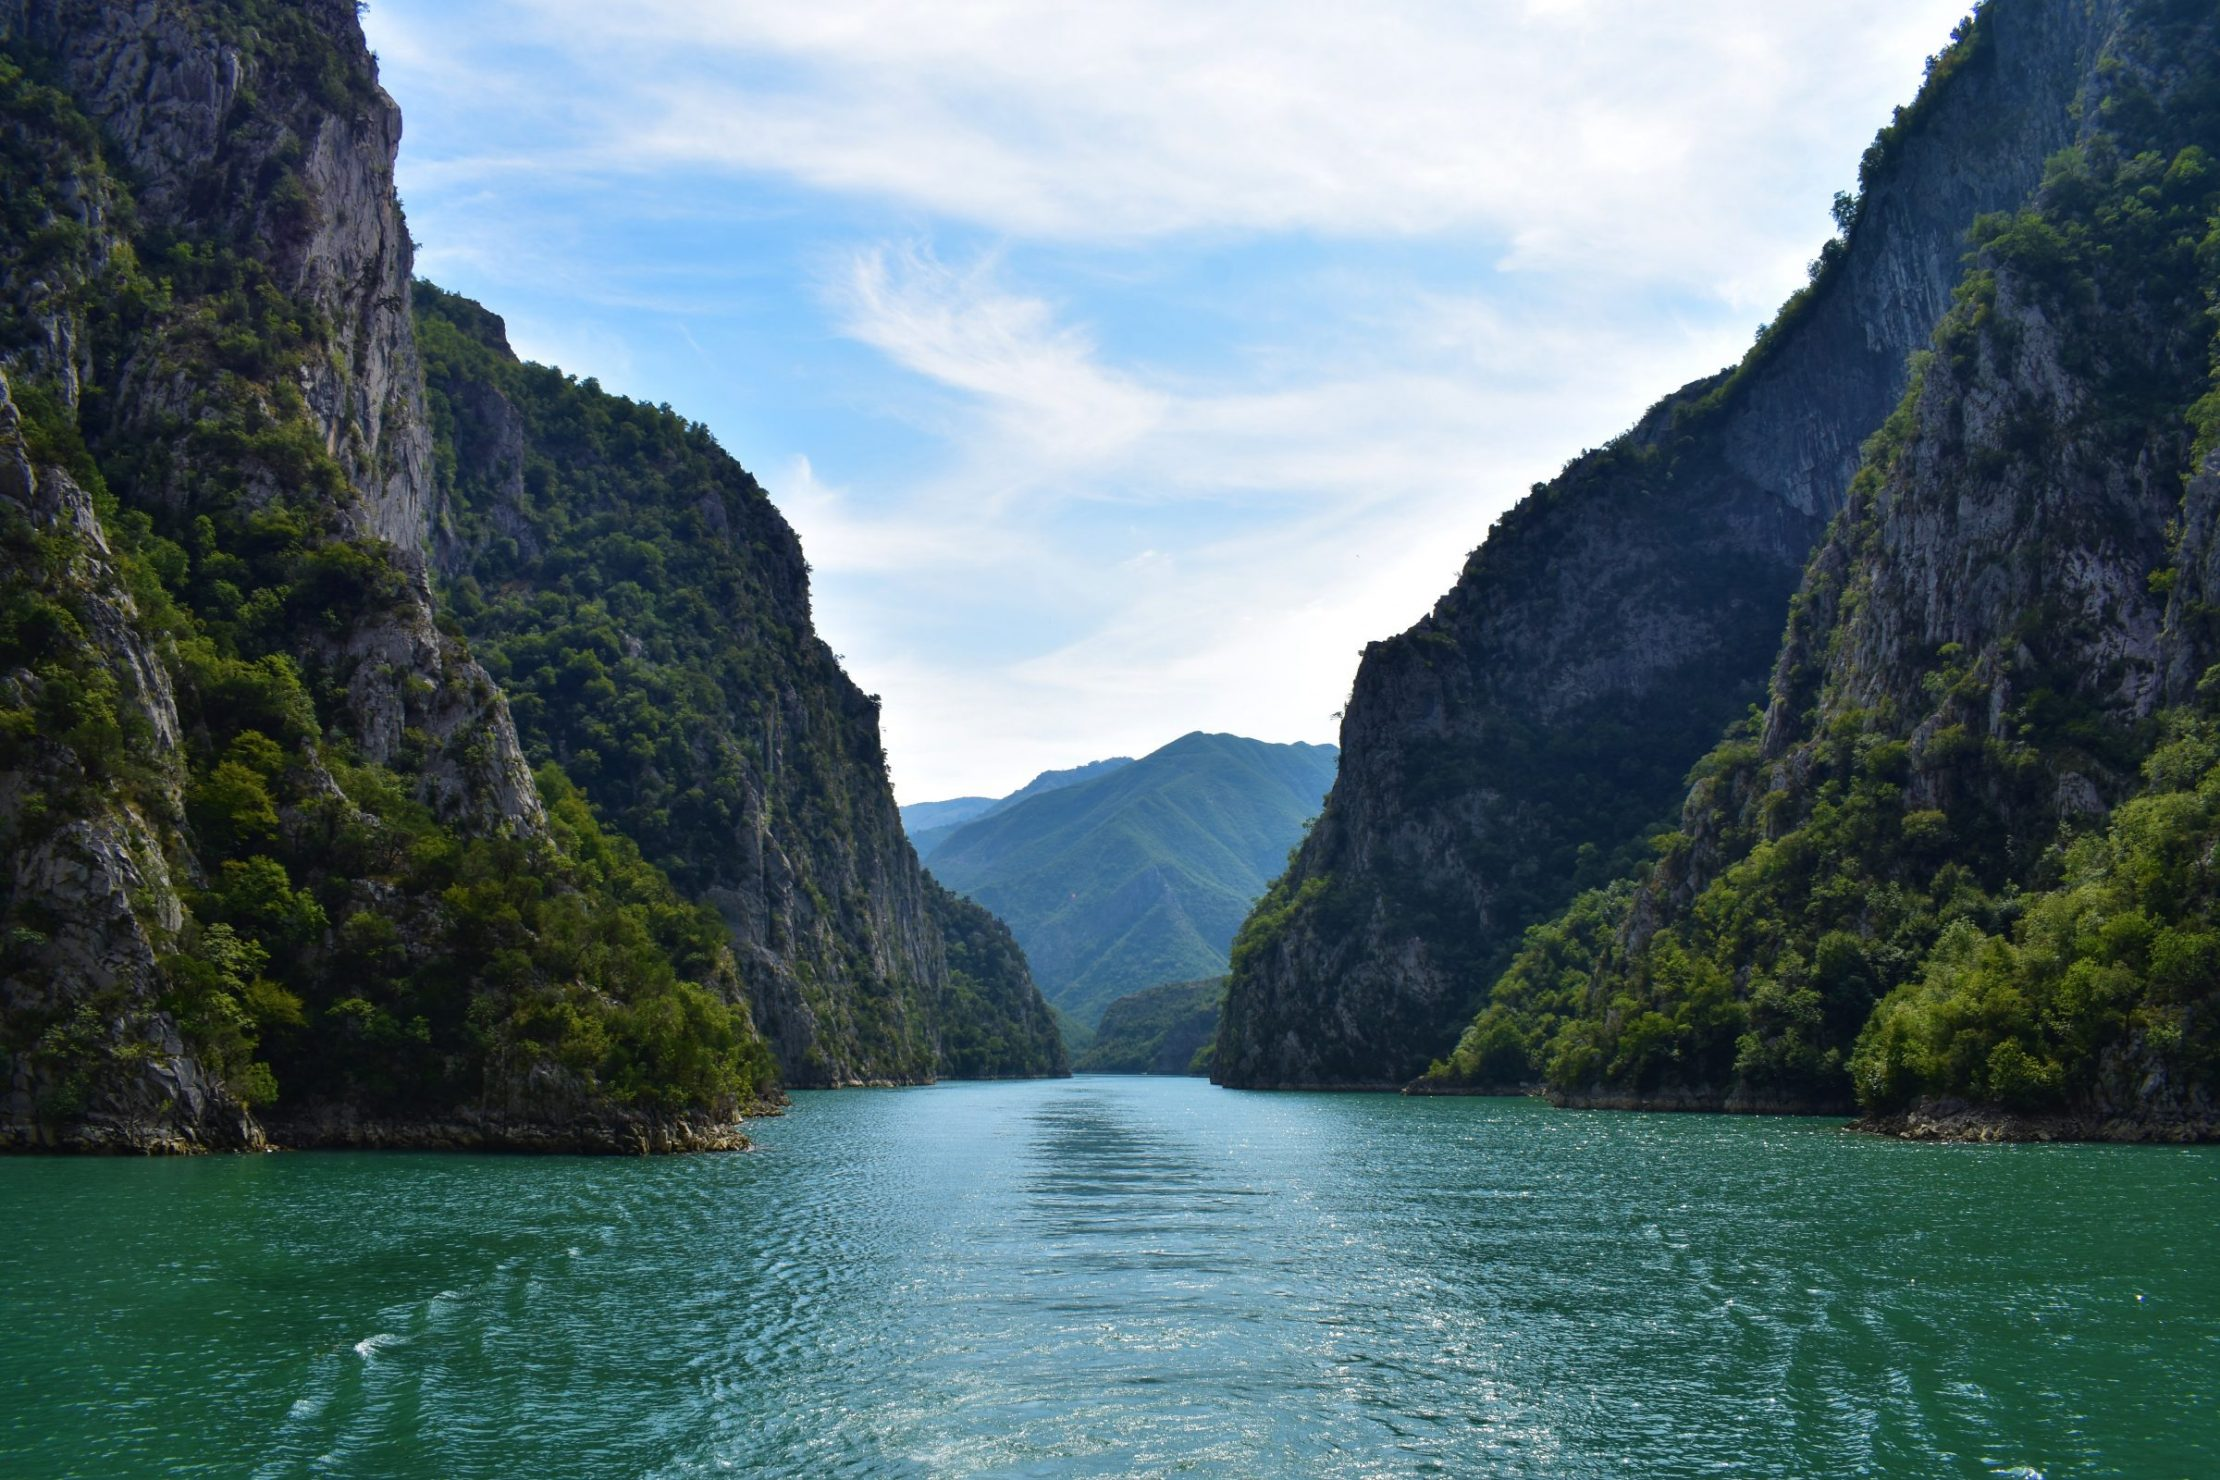 Albania best places - Fjord-like Komani Lake in the Albanian Alps